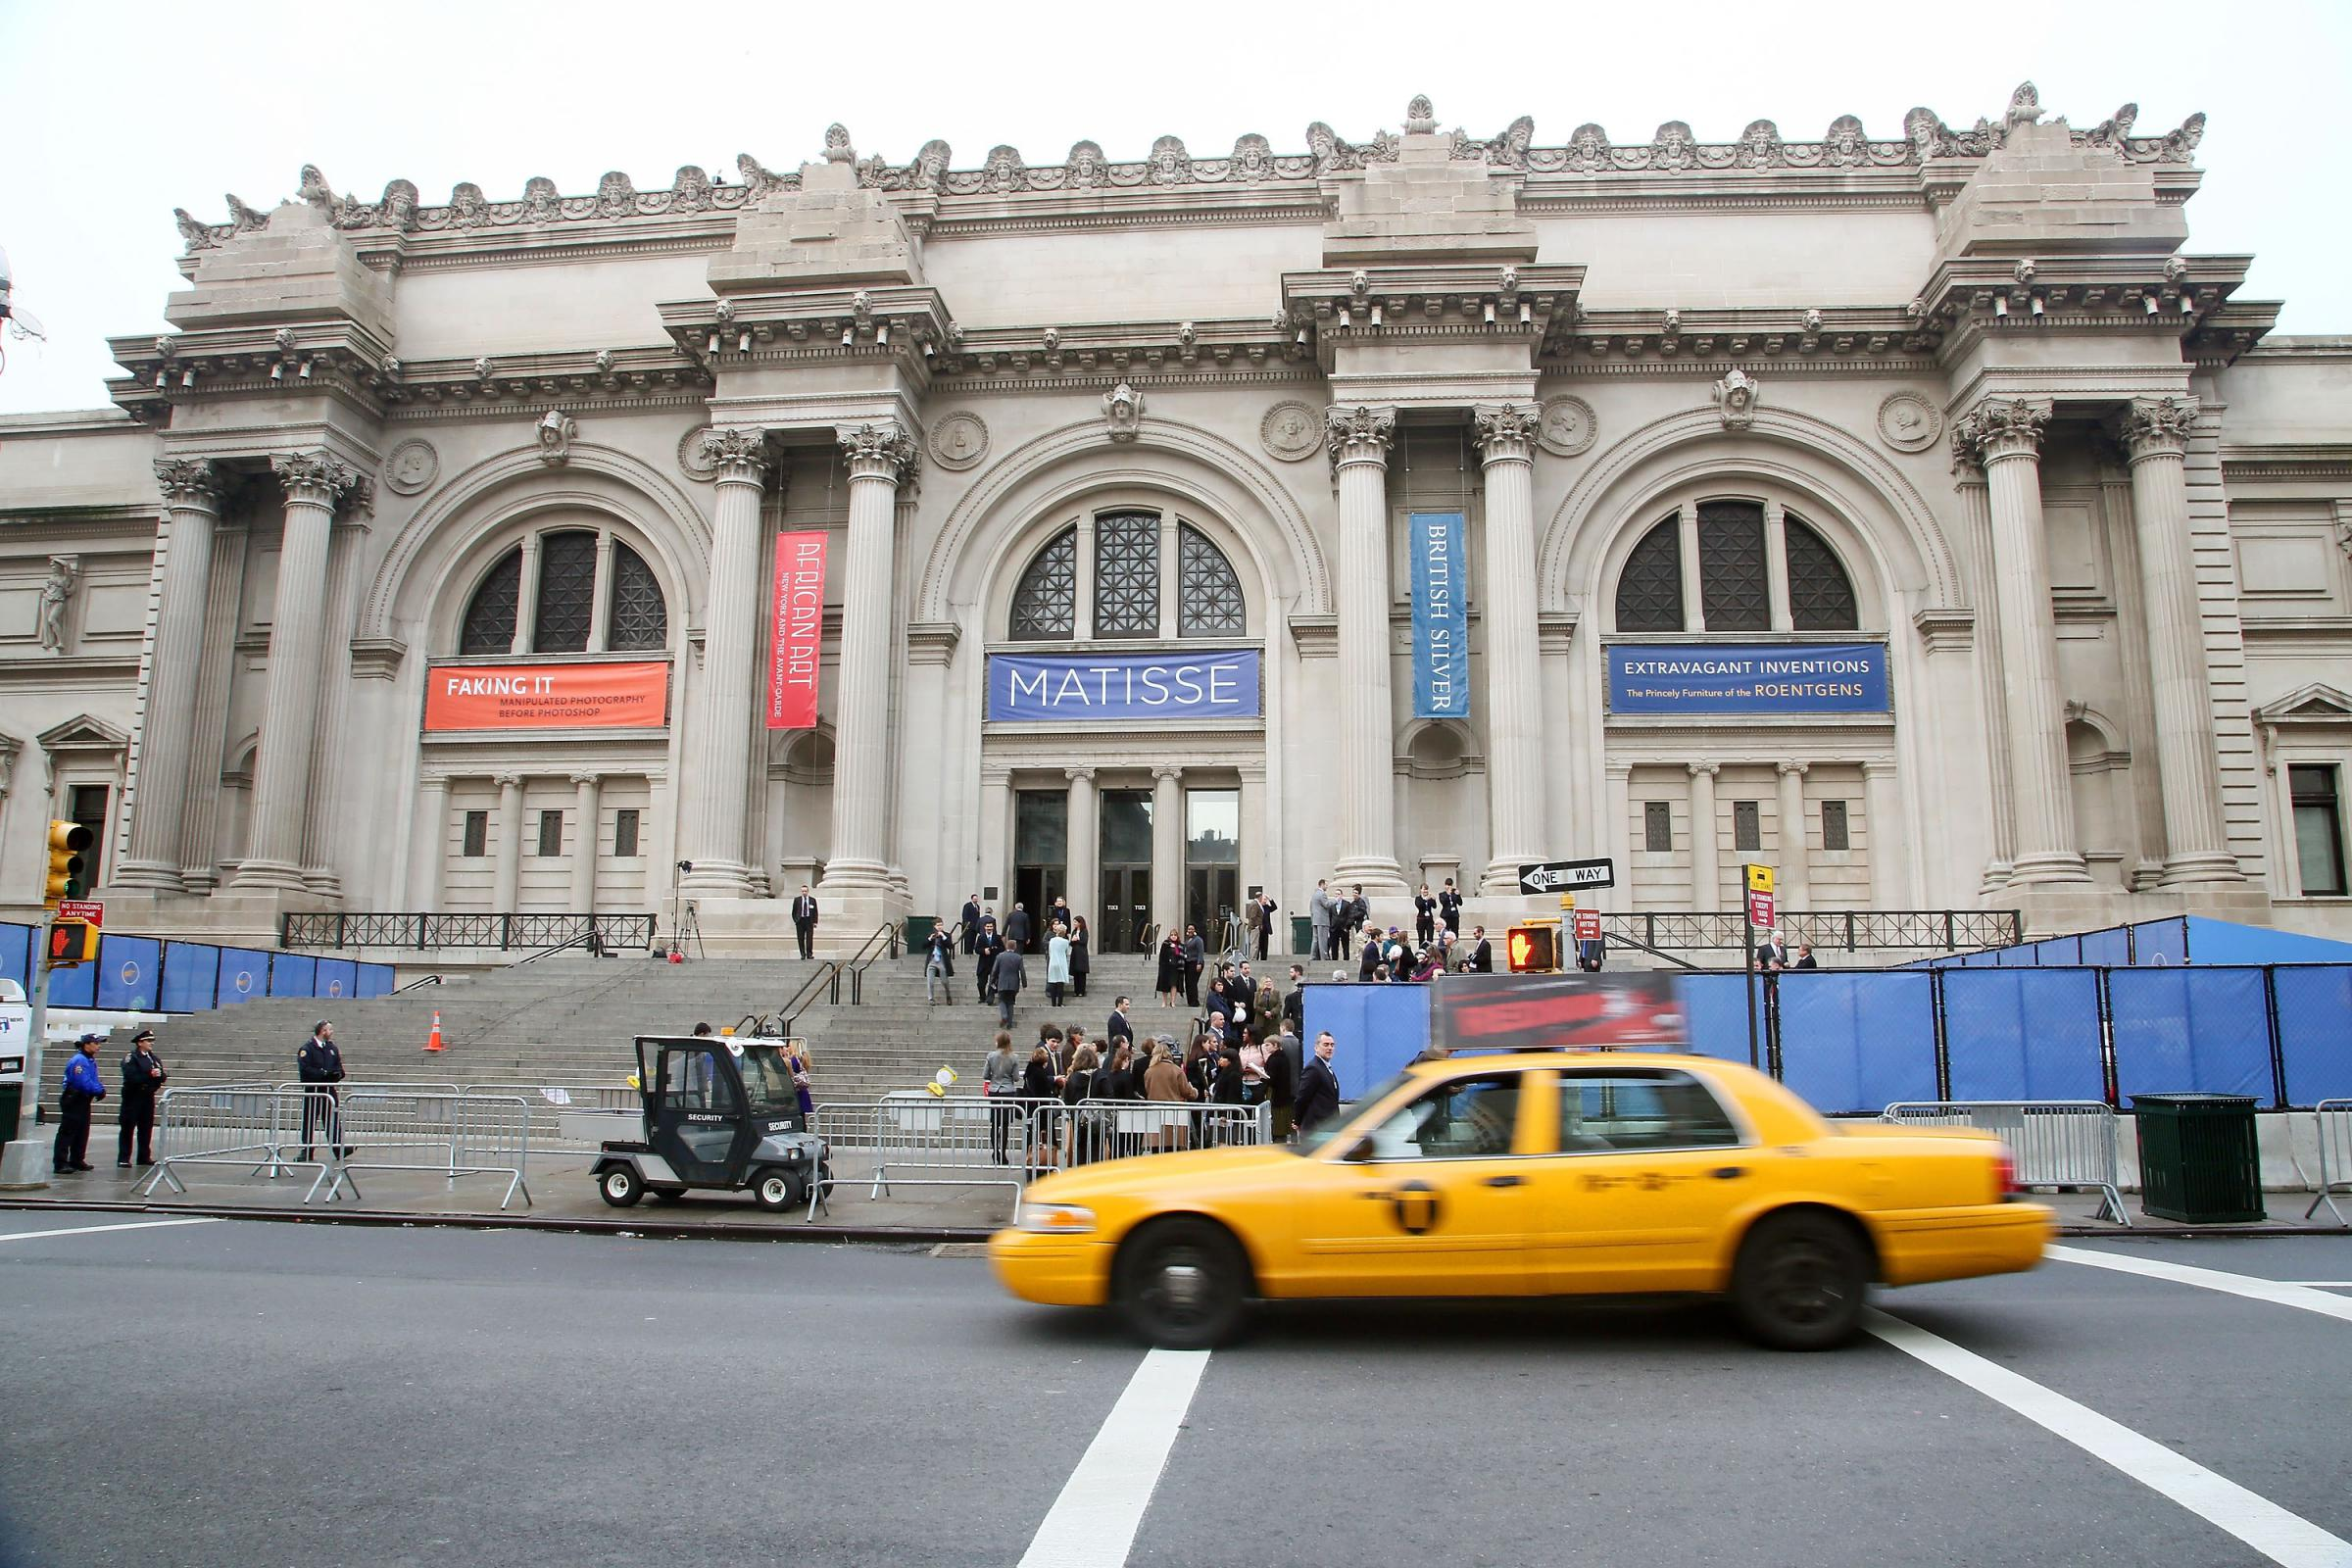 New York's Met Museum Is Sued Over 'Deceptive' Entrance Fees